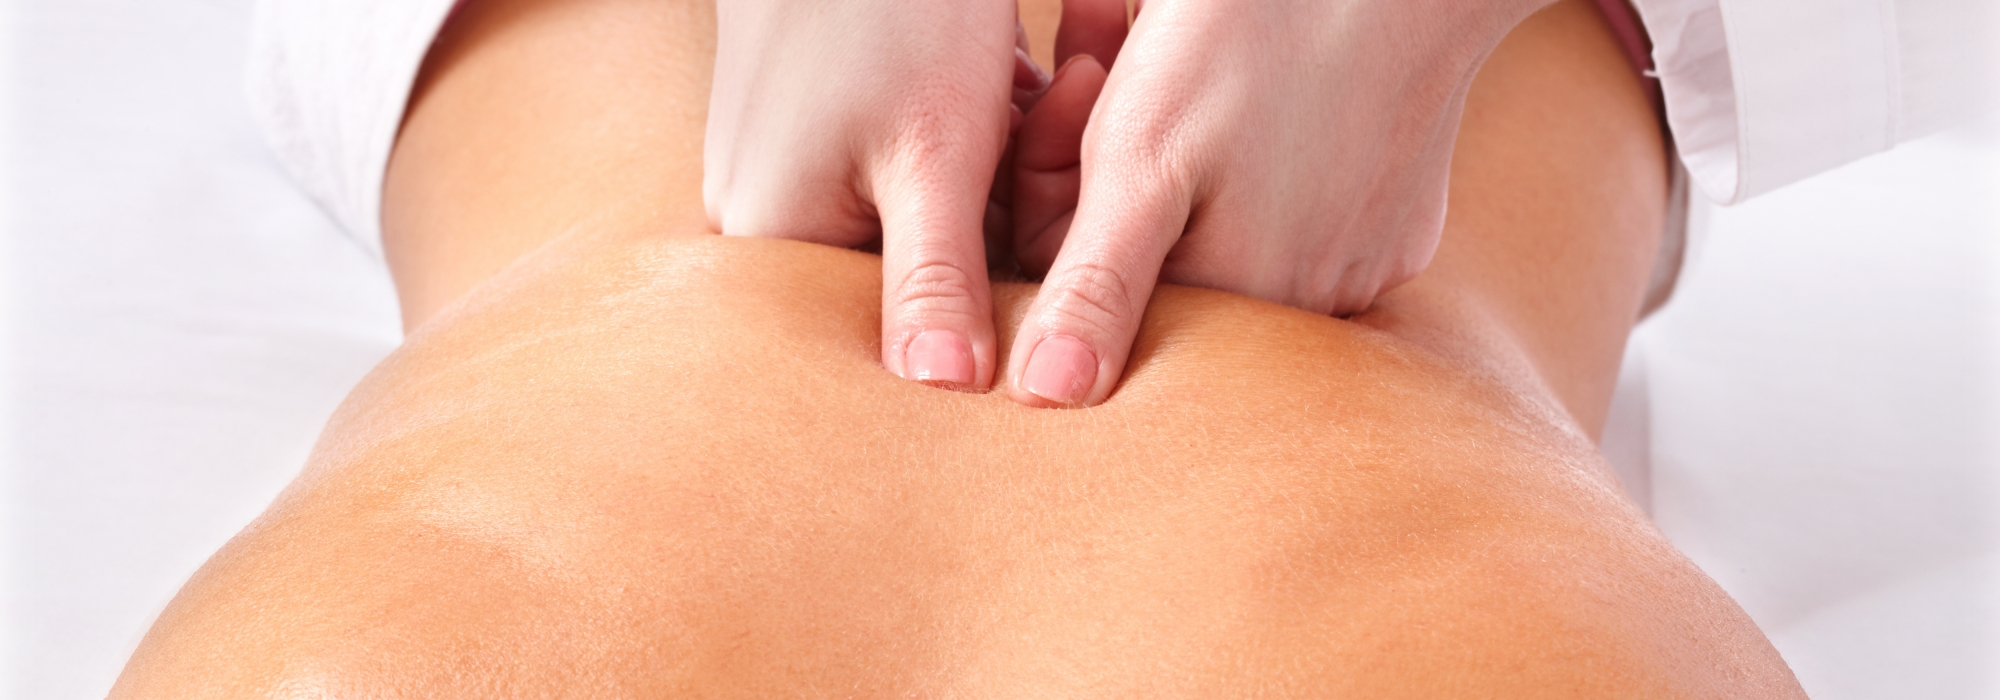 Massage of female back. Spa.